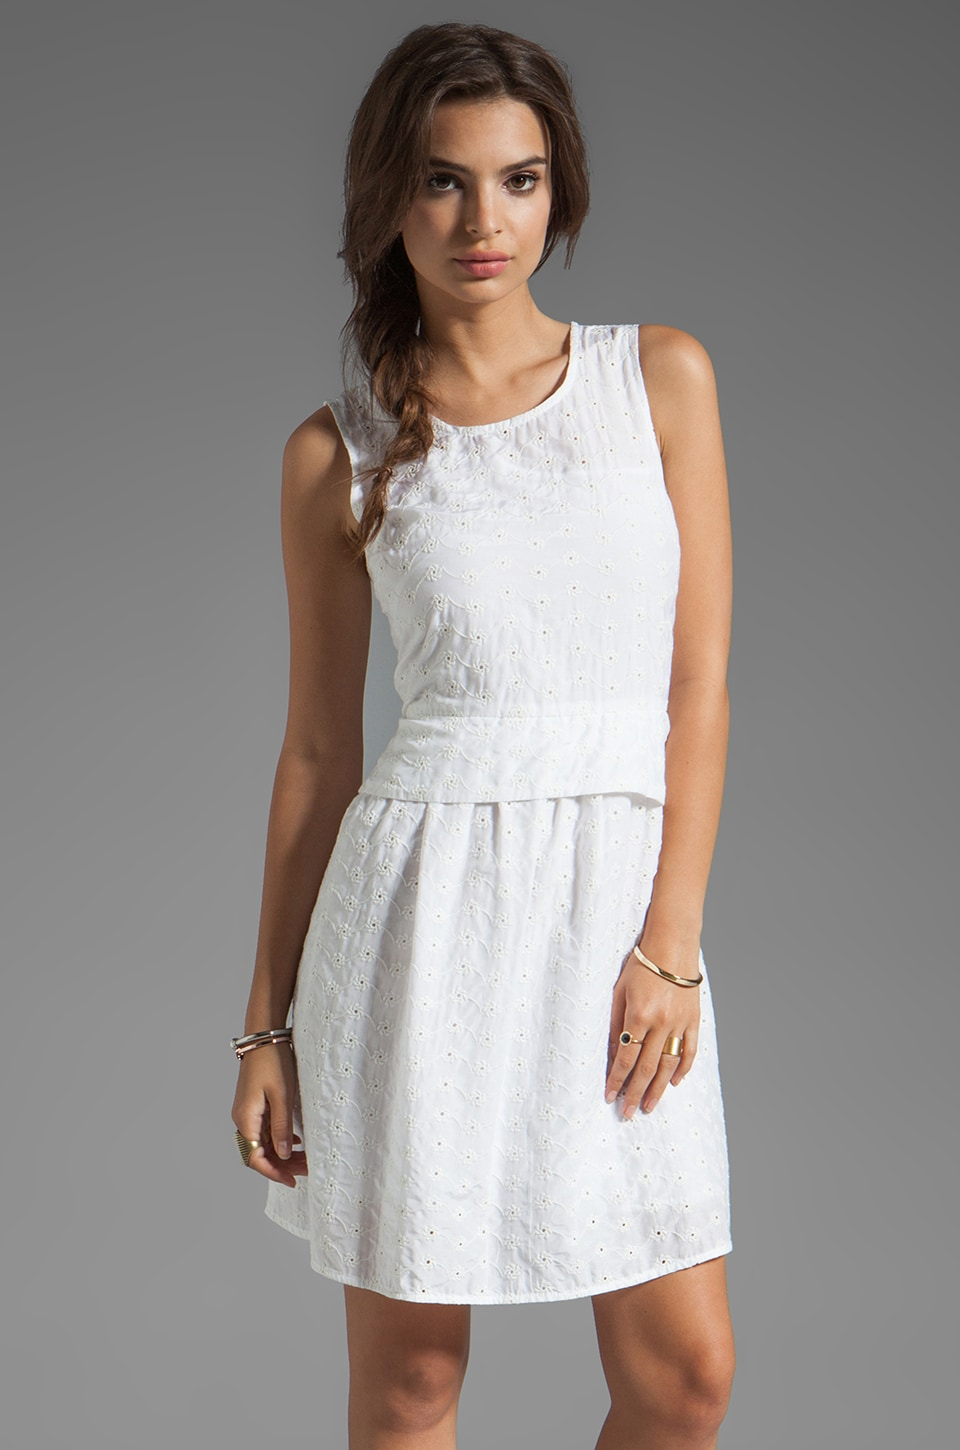 Marc by Marc Jacobs Rosie Eyelet Dress in Wicken White Multi